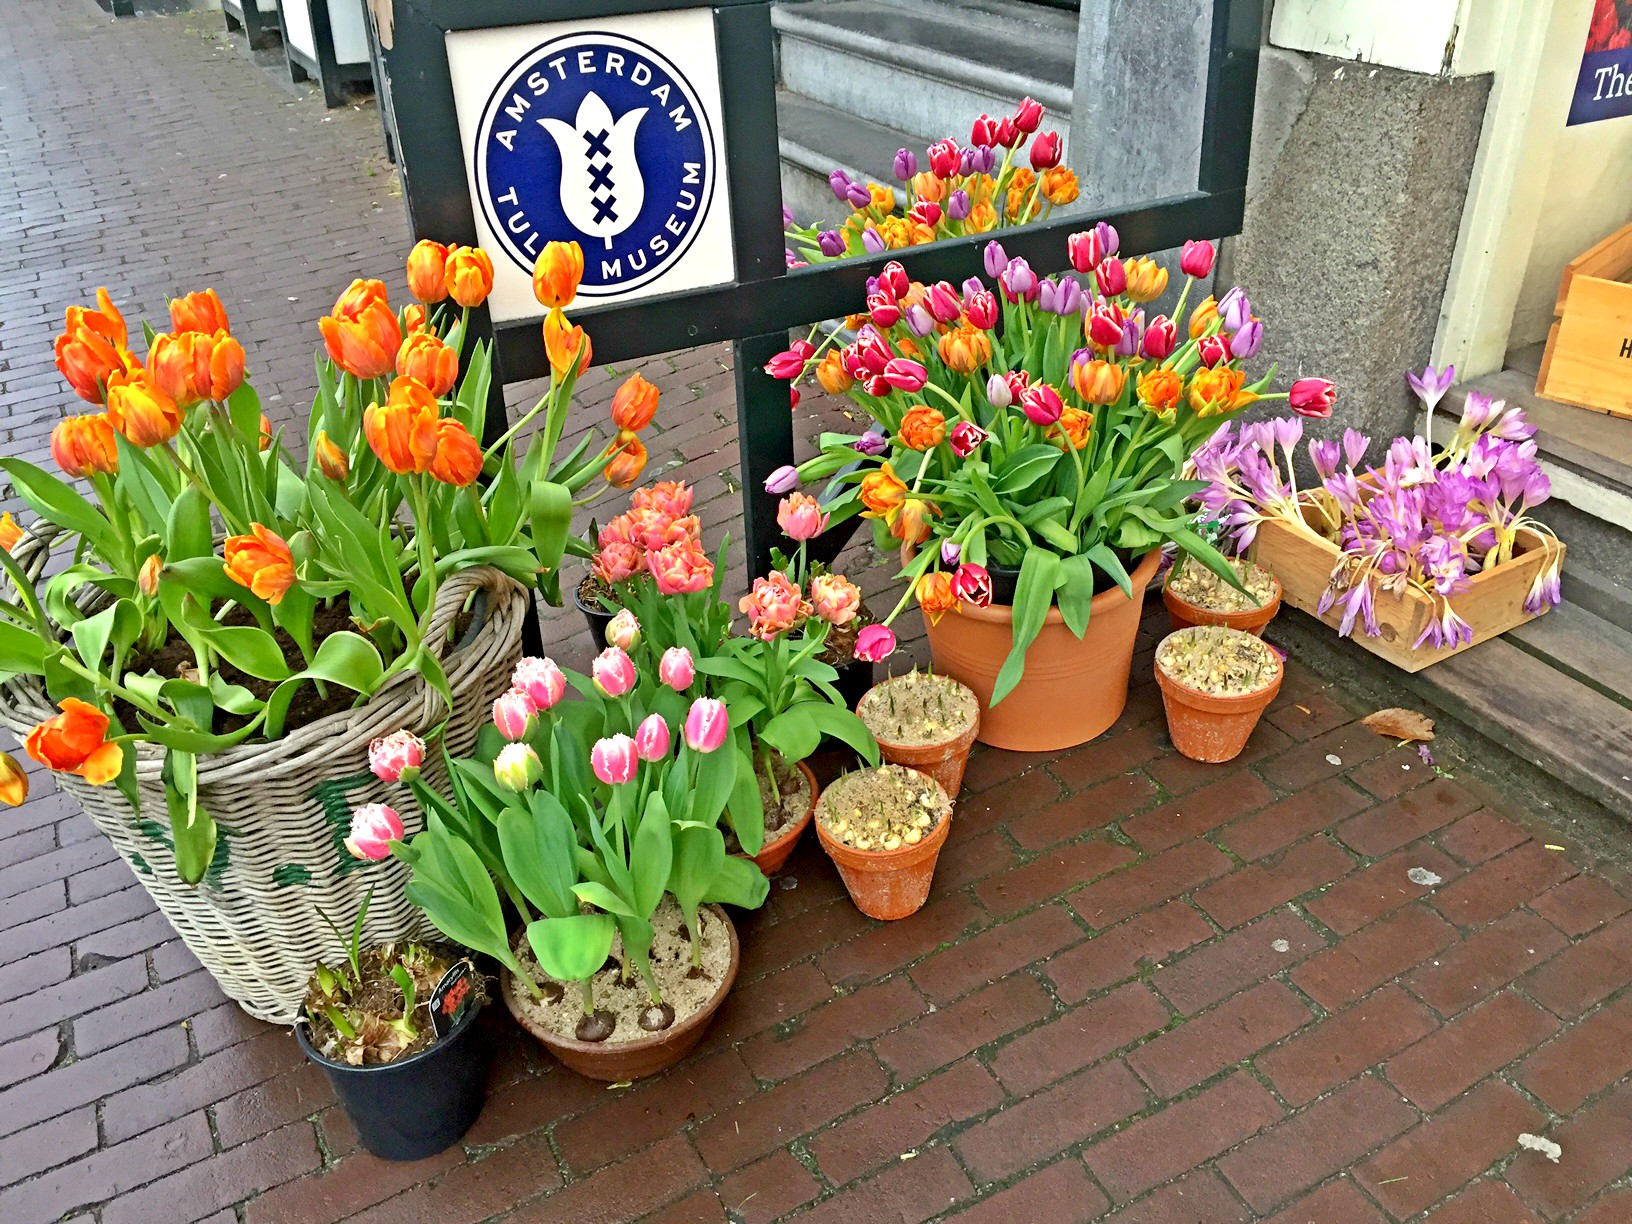 Tulips- symbol of the Netherlands